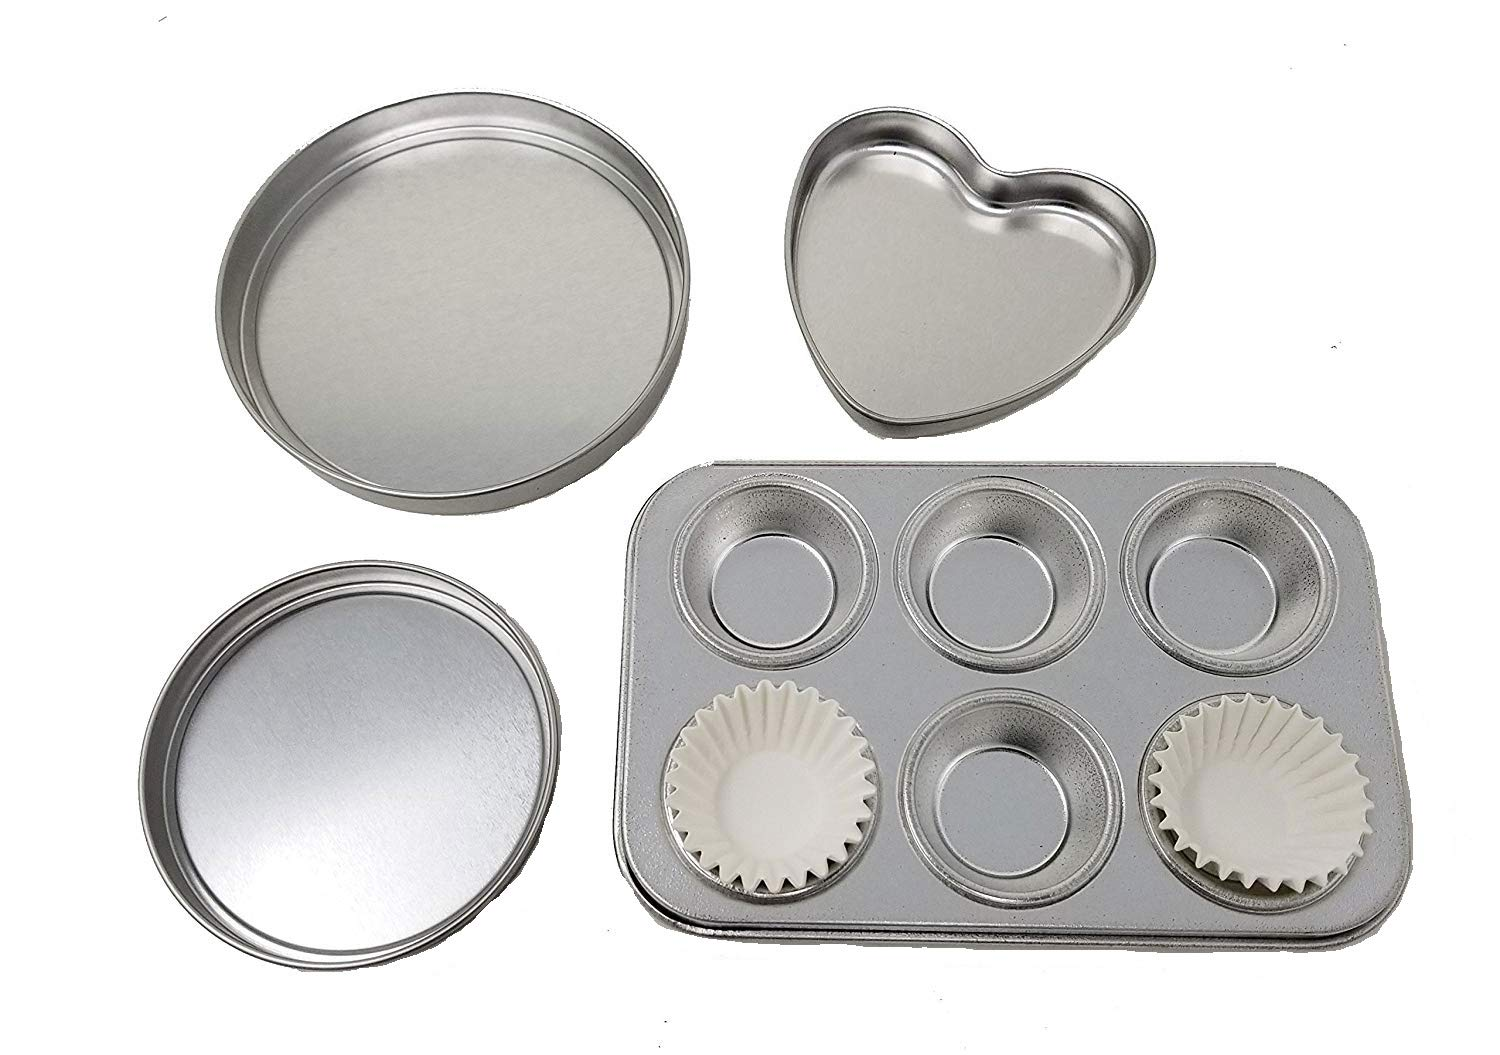 4 Pan Kit to fit Easy Ovens Bake , Heart Pan, 2 Round Pans & 1 small extra rectangle pan replacements